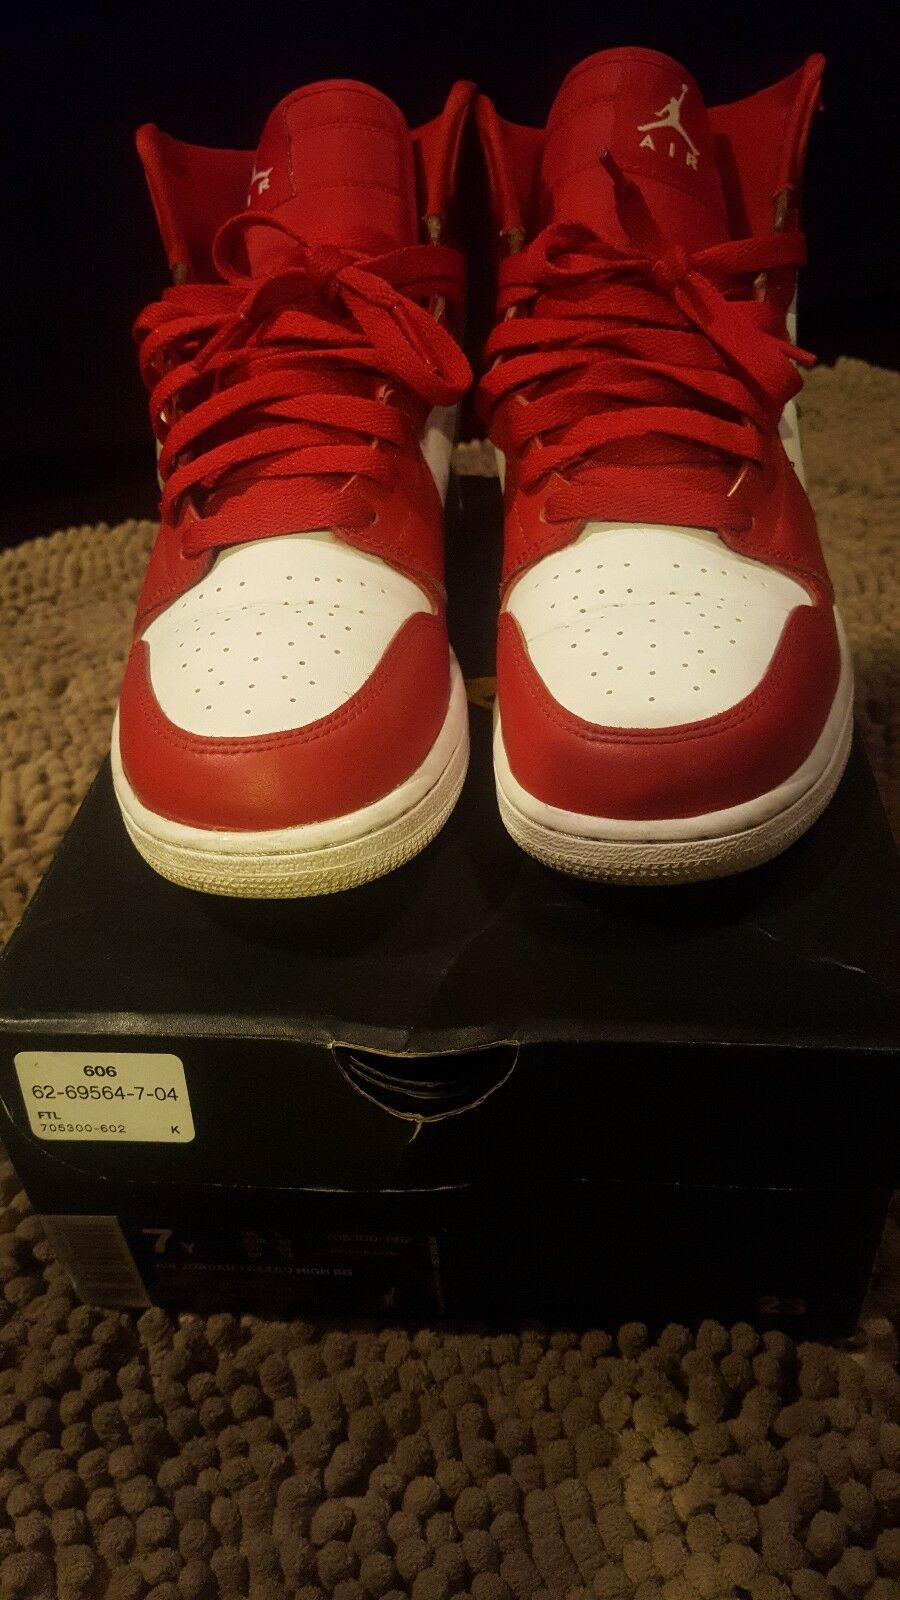 Gym Red 1s. These are Jordan Hightop 1s